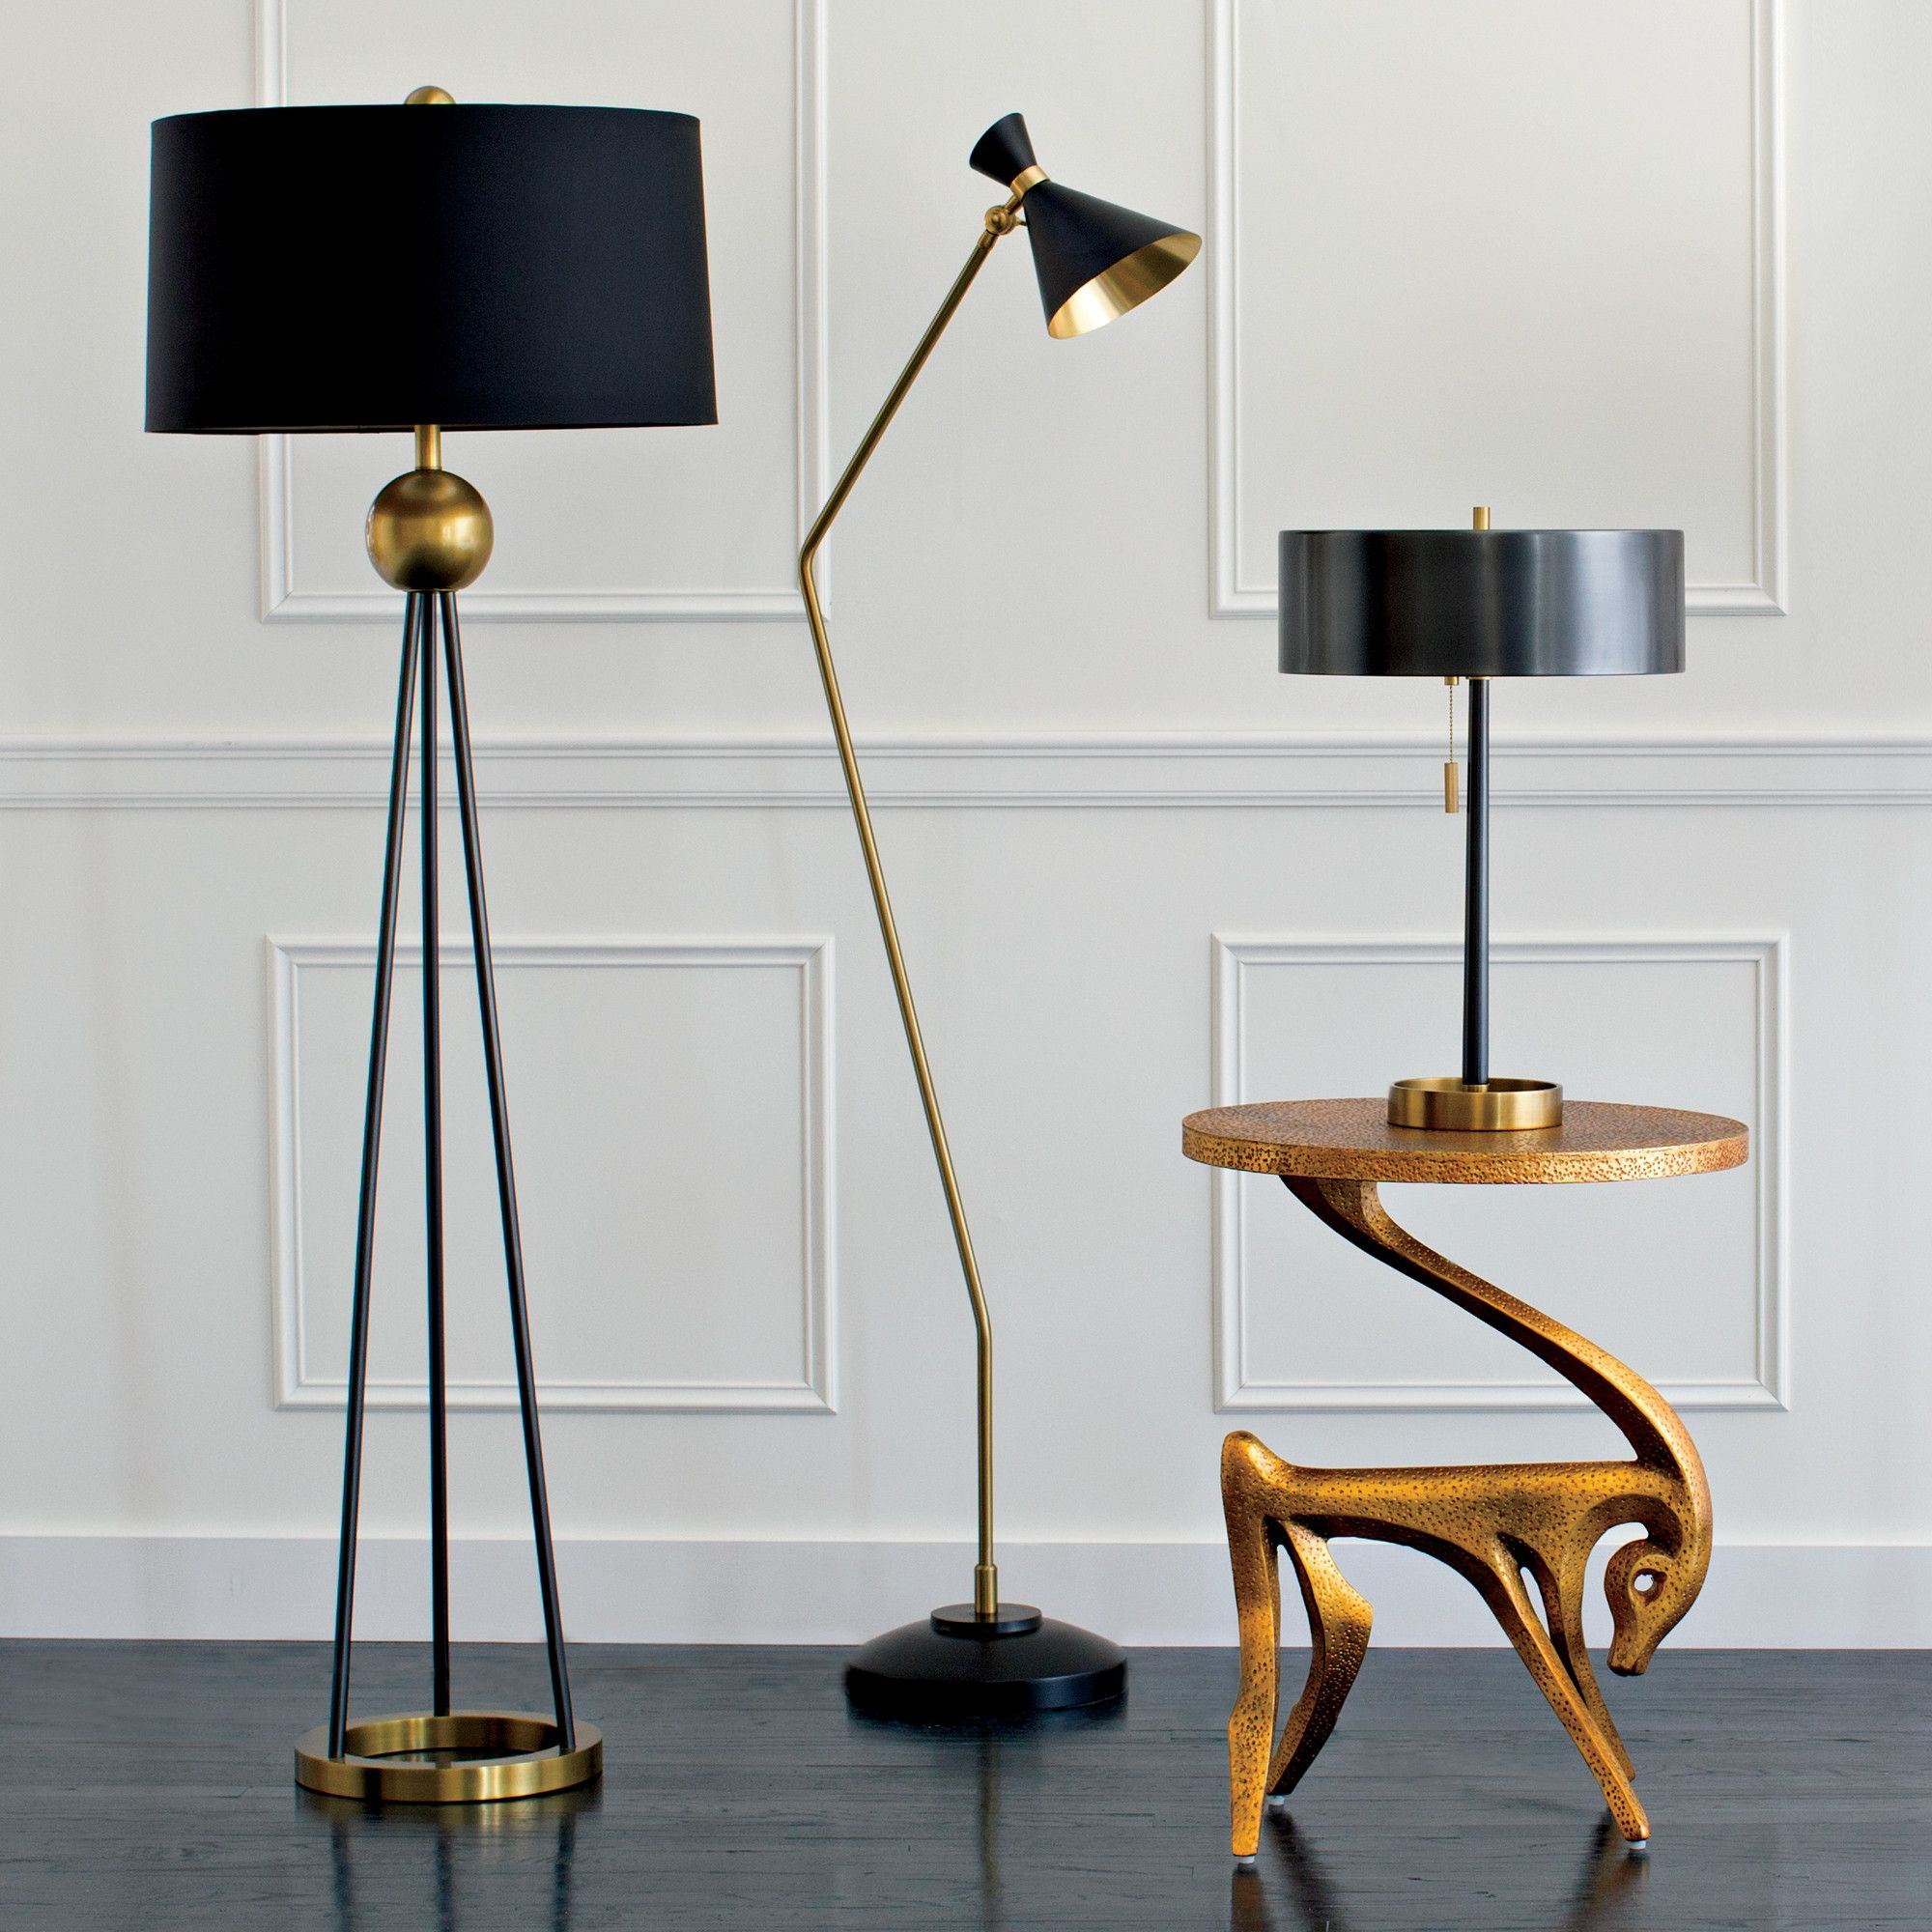 Youll love the dunham tripod floor lamp at dwellstudio with great youll love the dunham tripod floor lamp at dwellstudio with great deals on modern products and free shipping on most stuff even the big stuff mozeypictures Choice Image